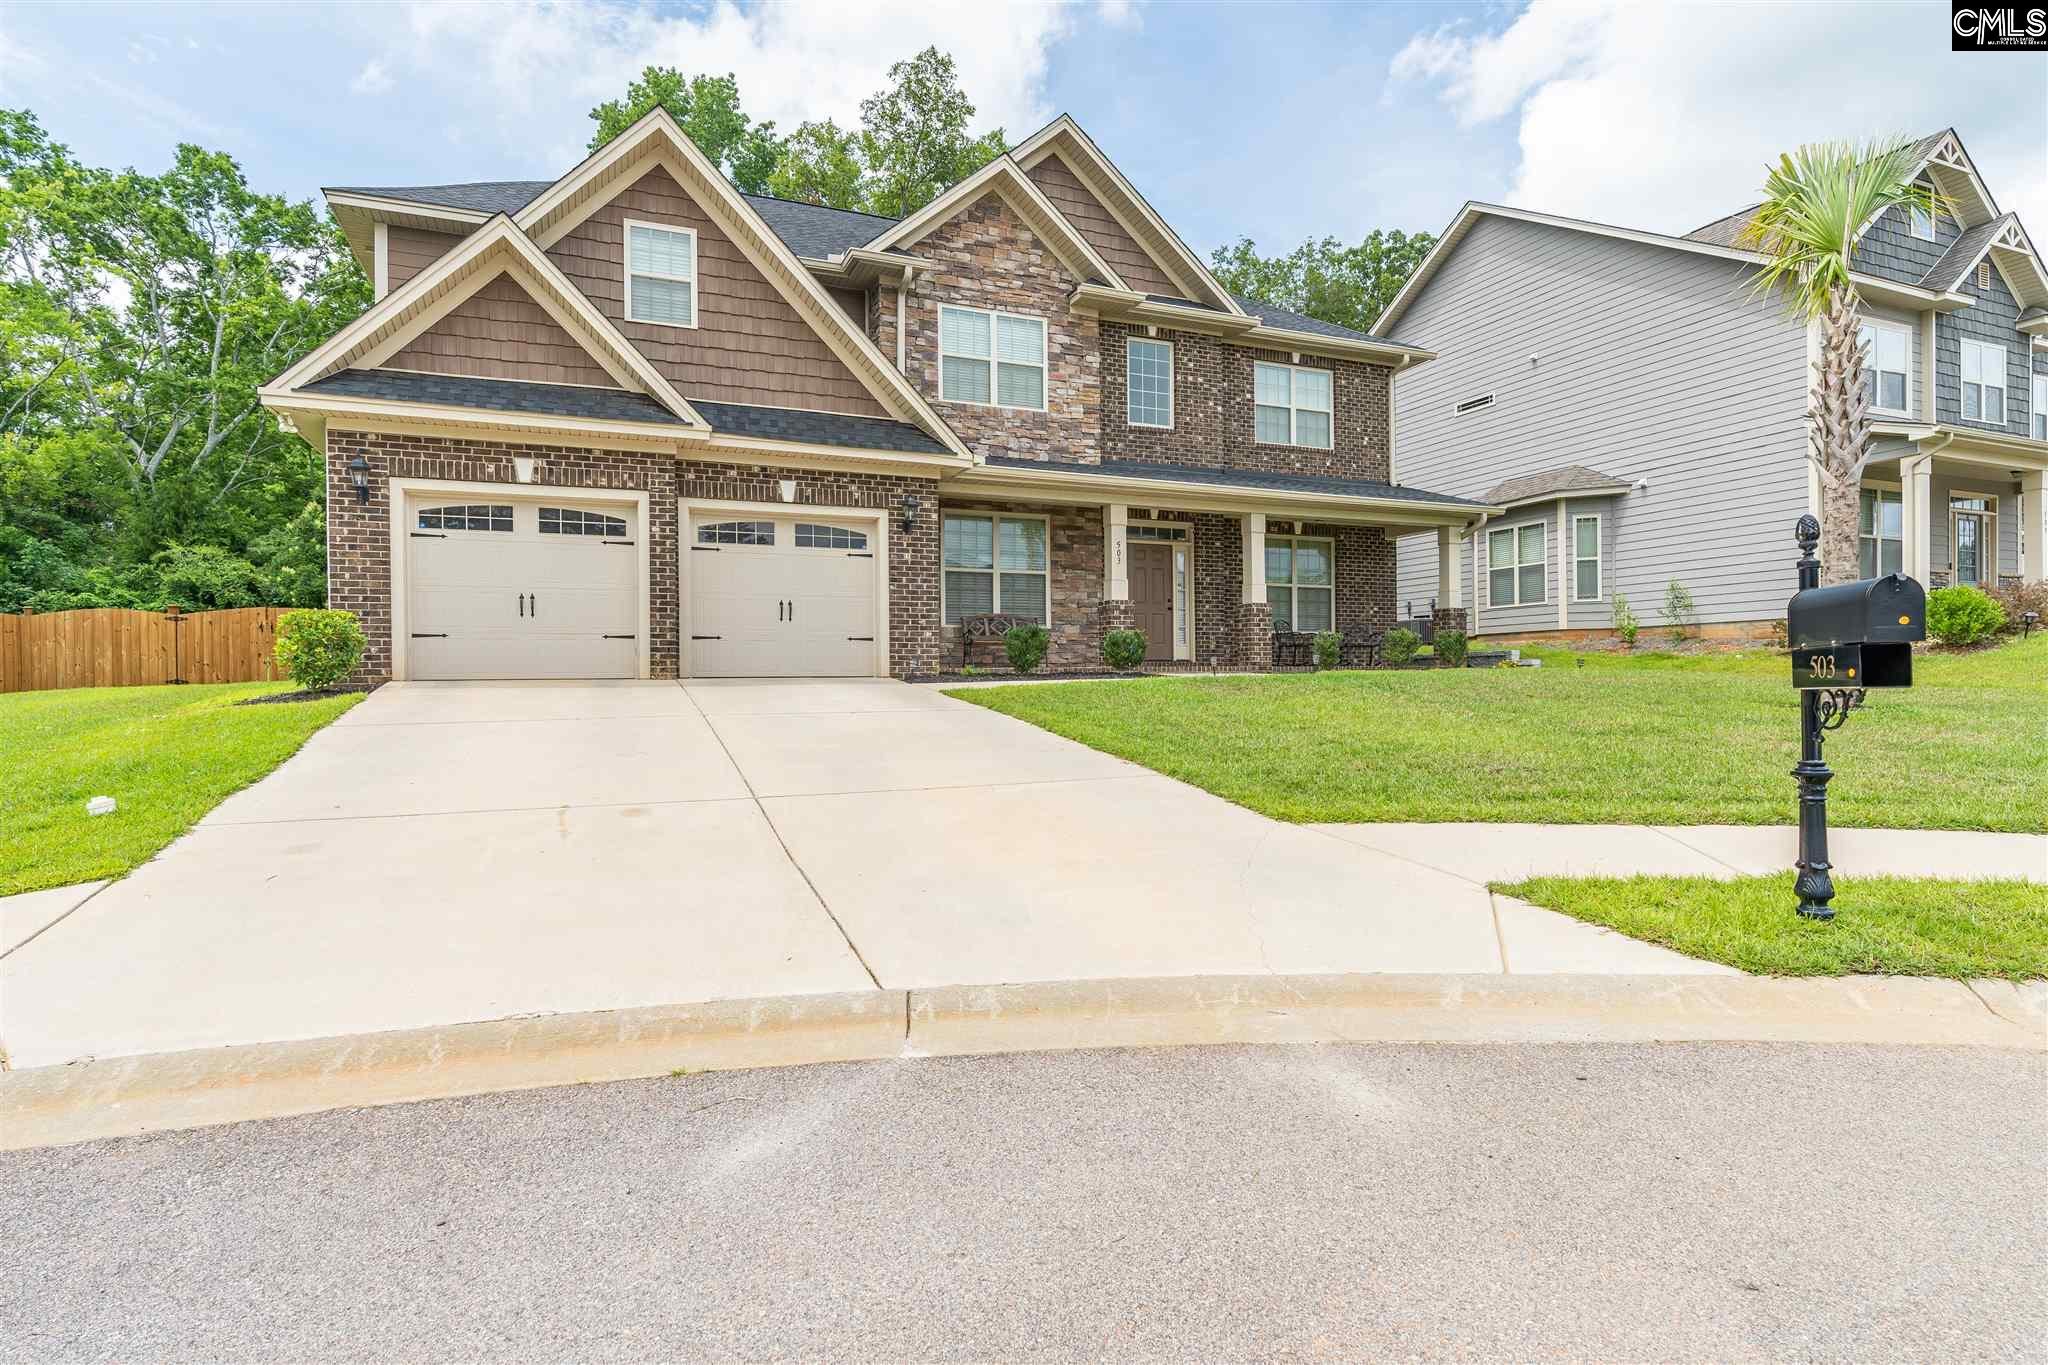 503 Compass Rose Irmo, SC 29063